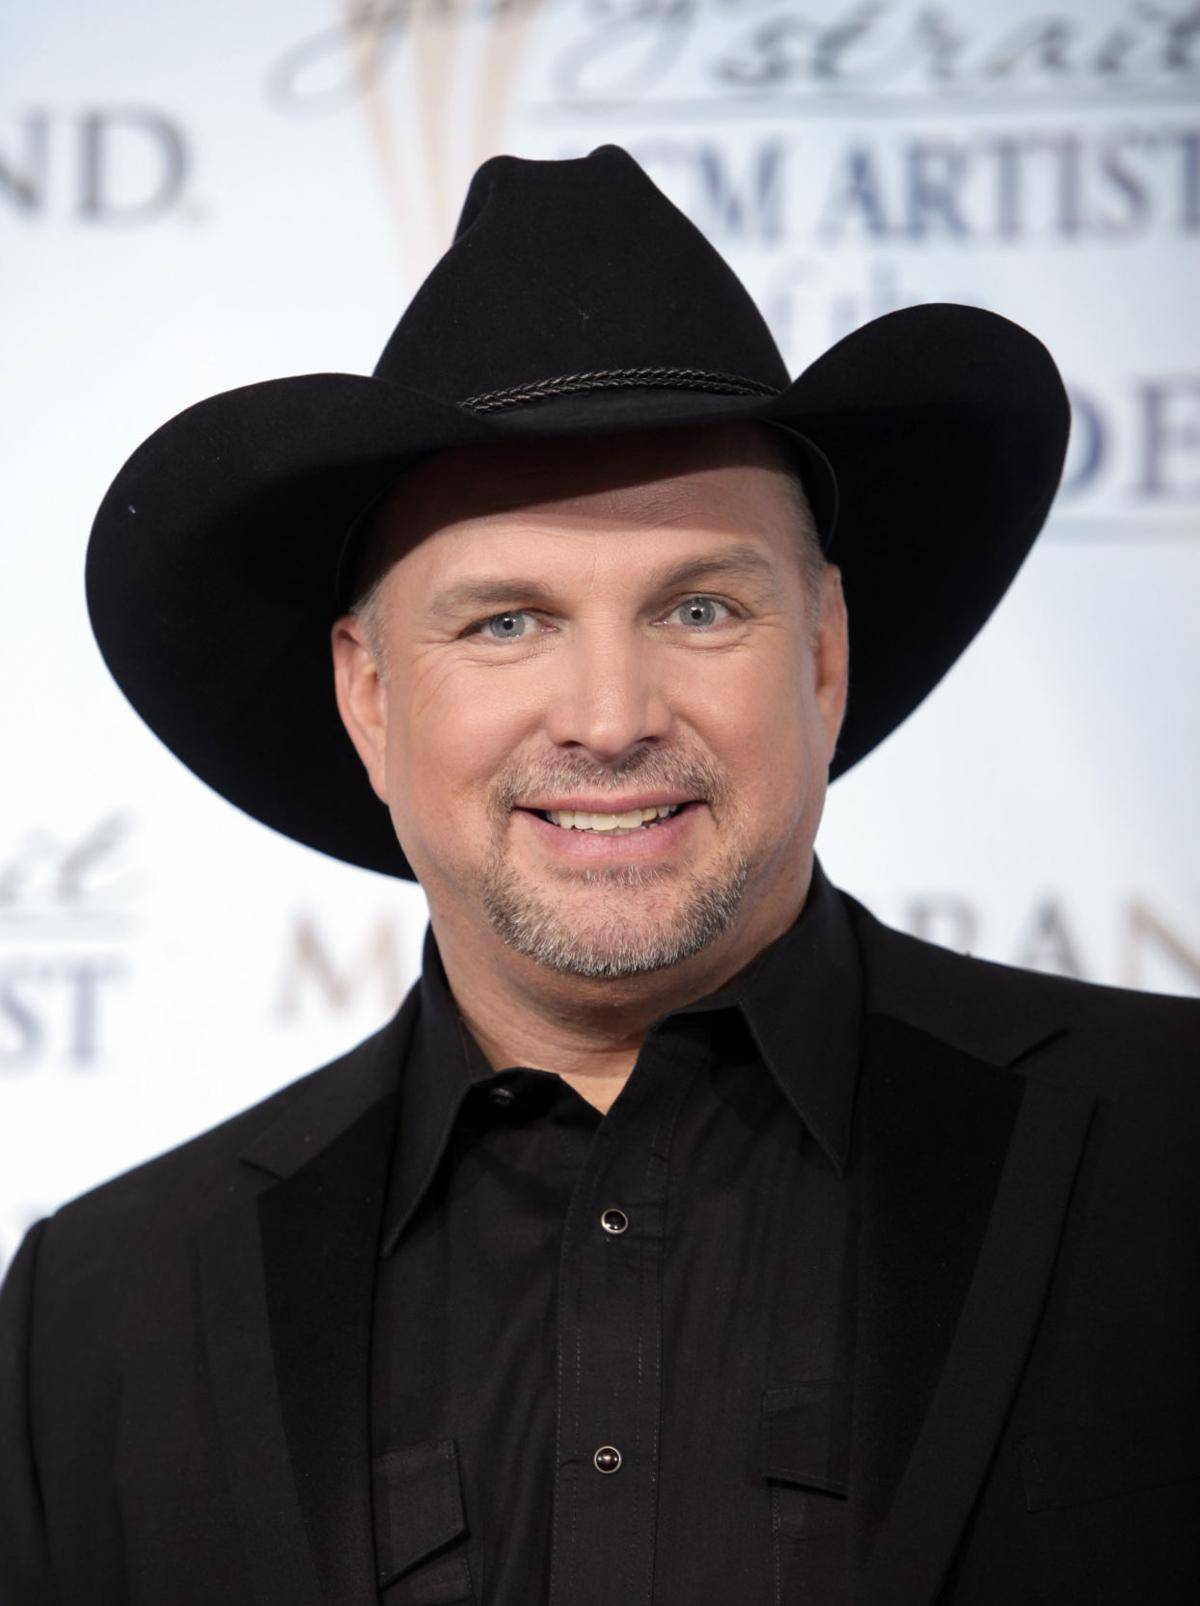 Garth Brooks announces four local performances in February, breaks ticket sales record in an hour